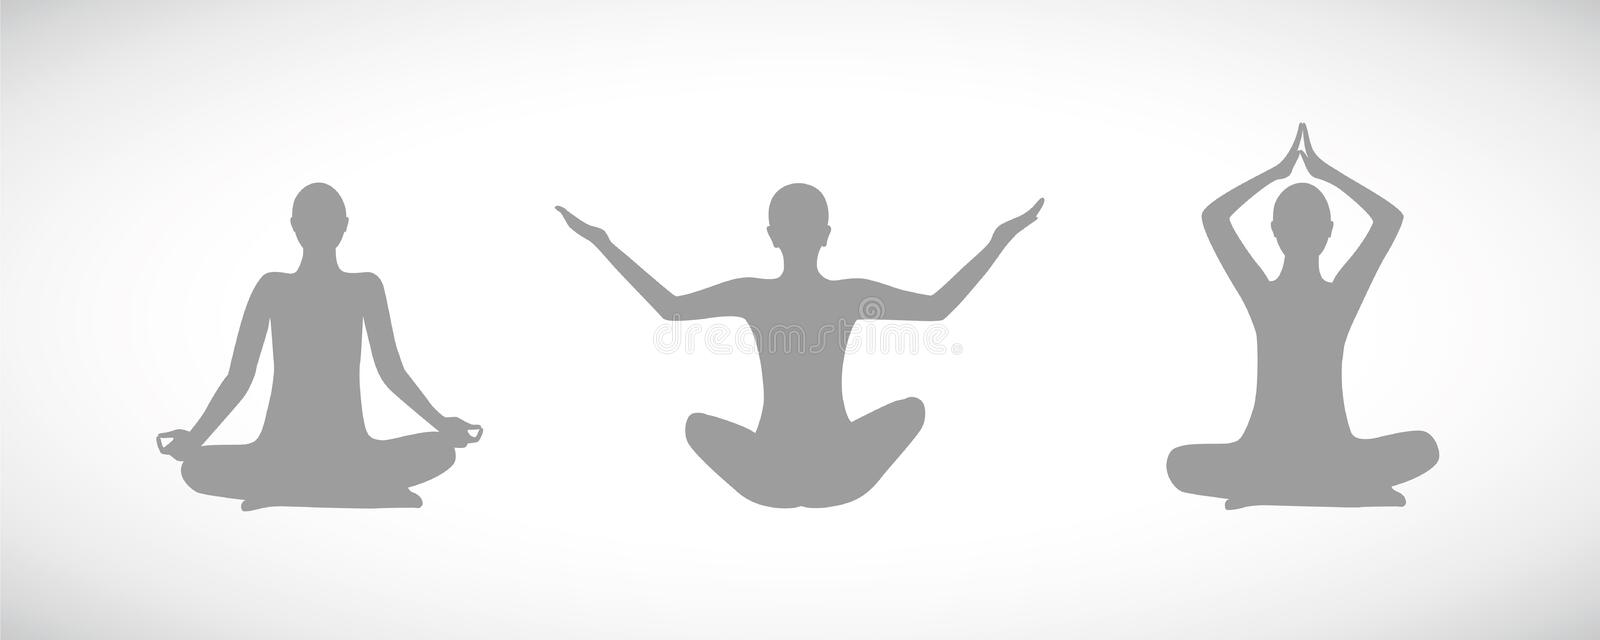 Silhouettes of people sitting in yoga pose for relaxation and meditation vector illustration